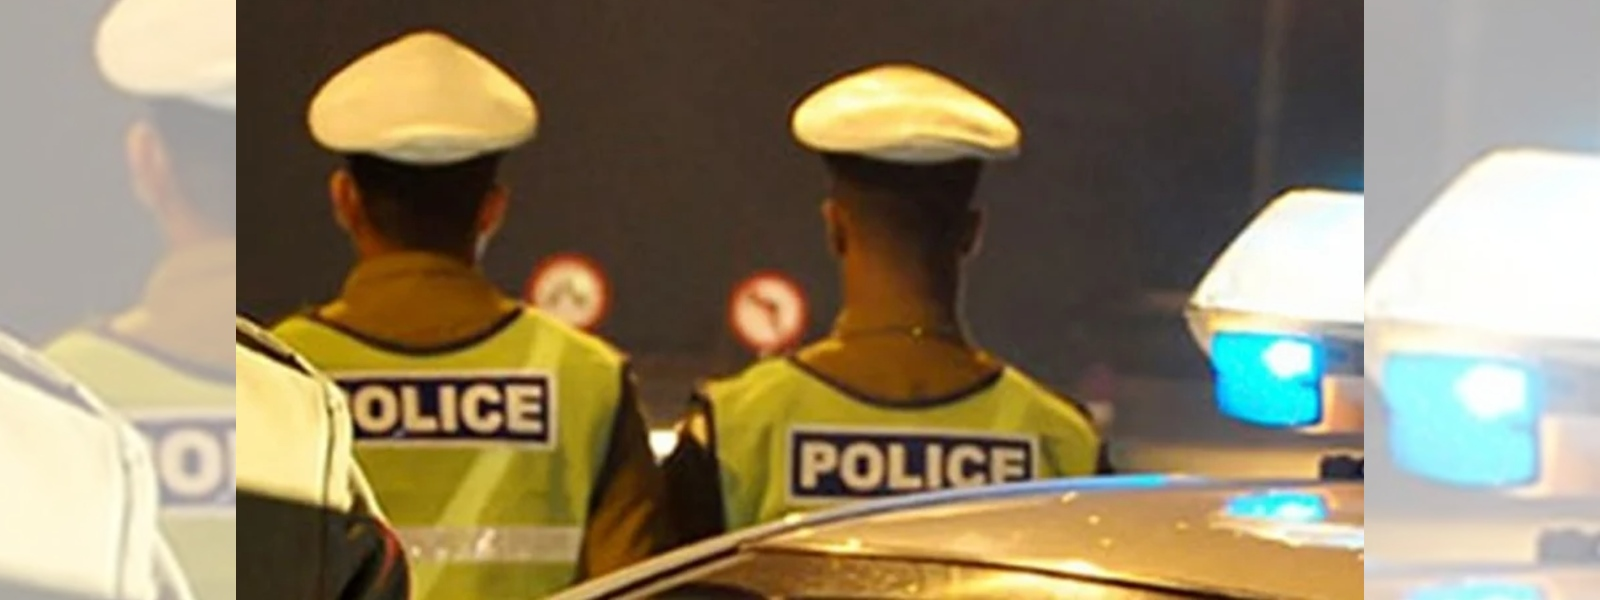 Sri Lanka Police charge over 3500 people for traffic violations